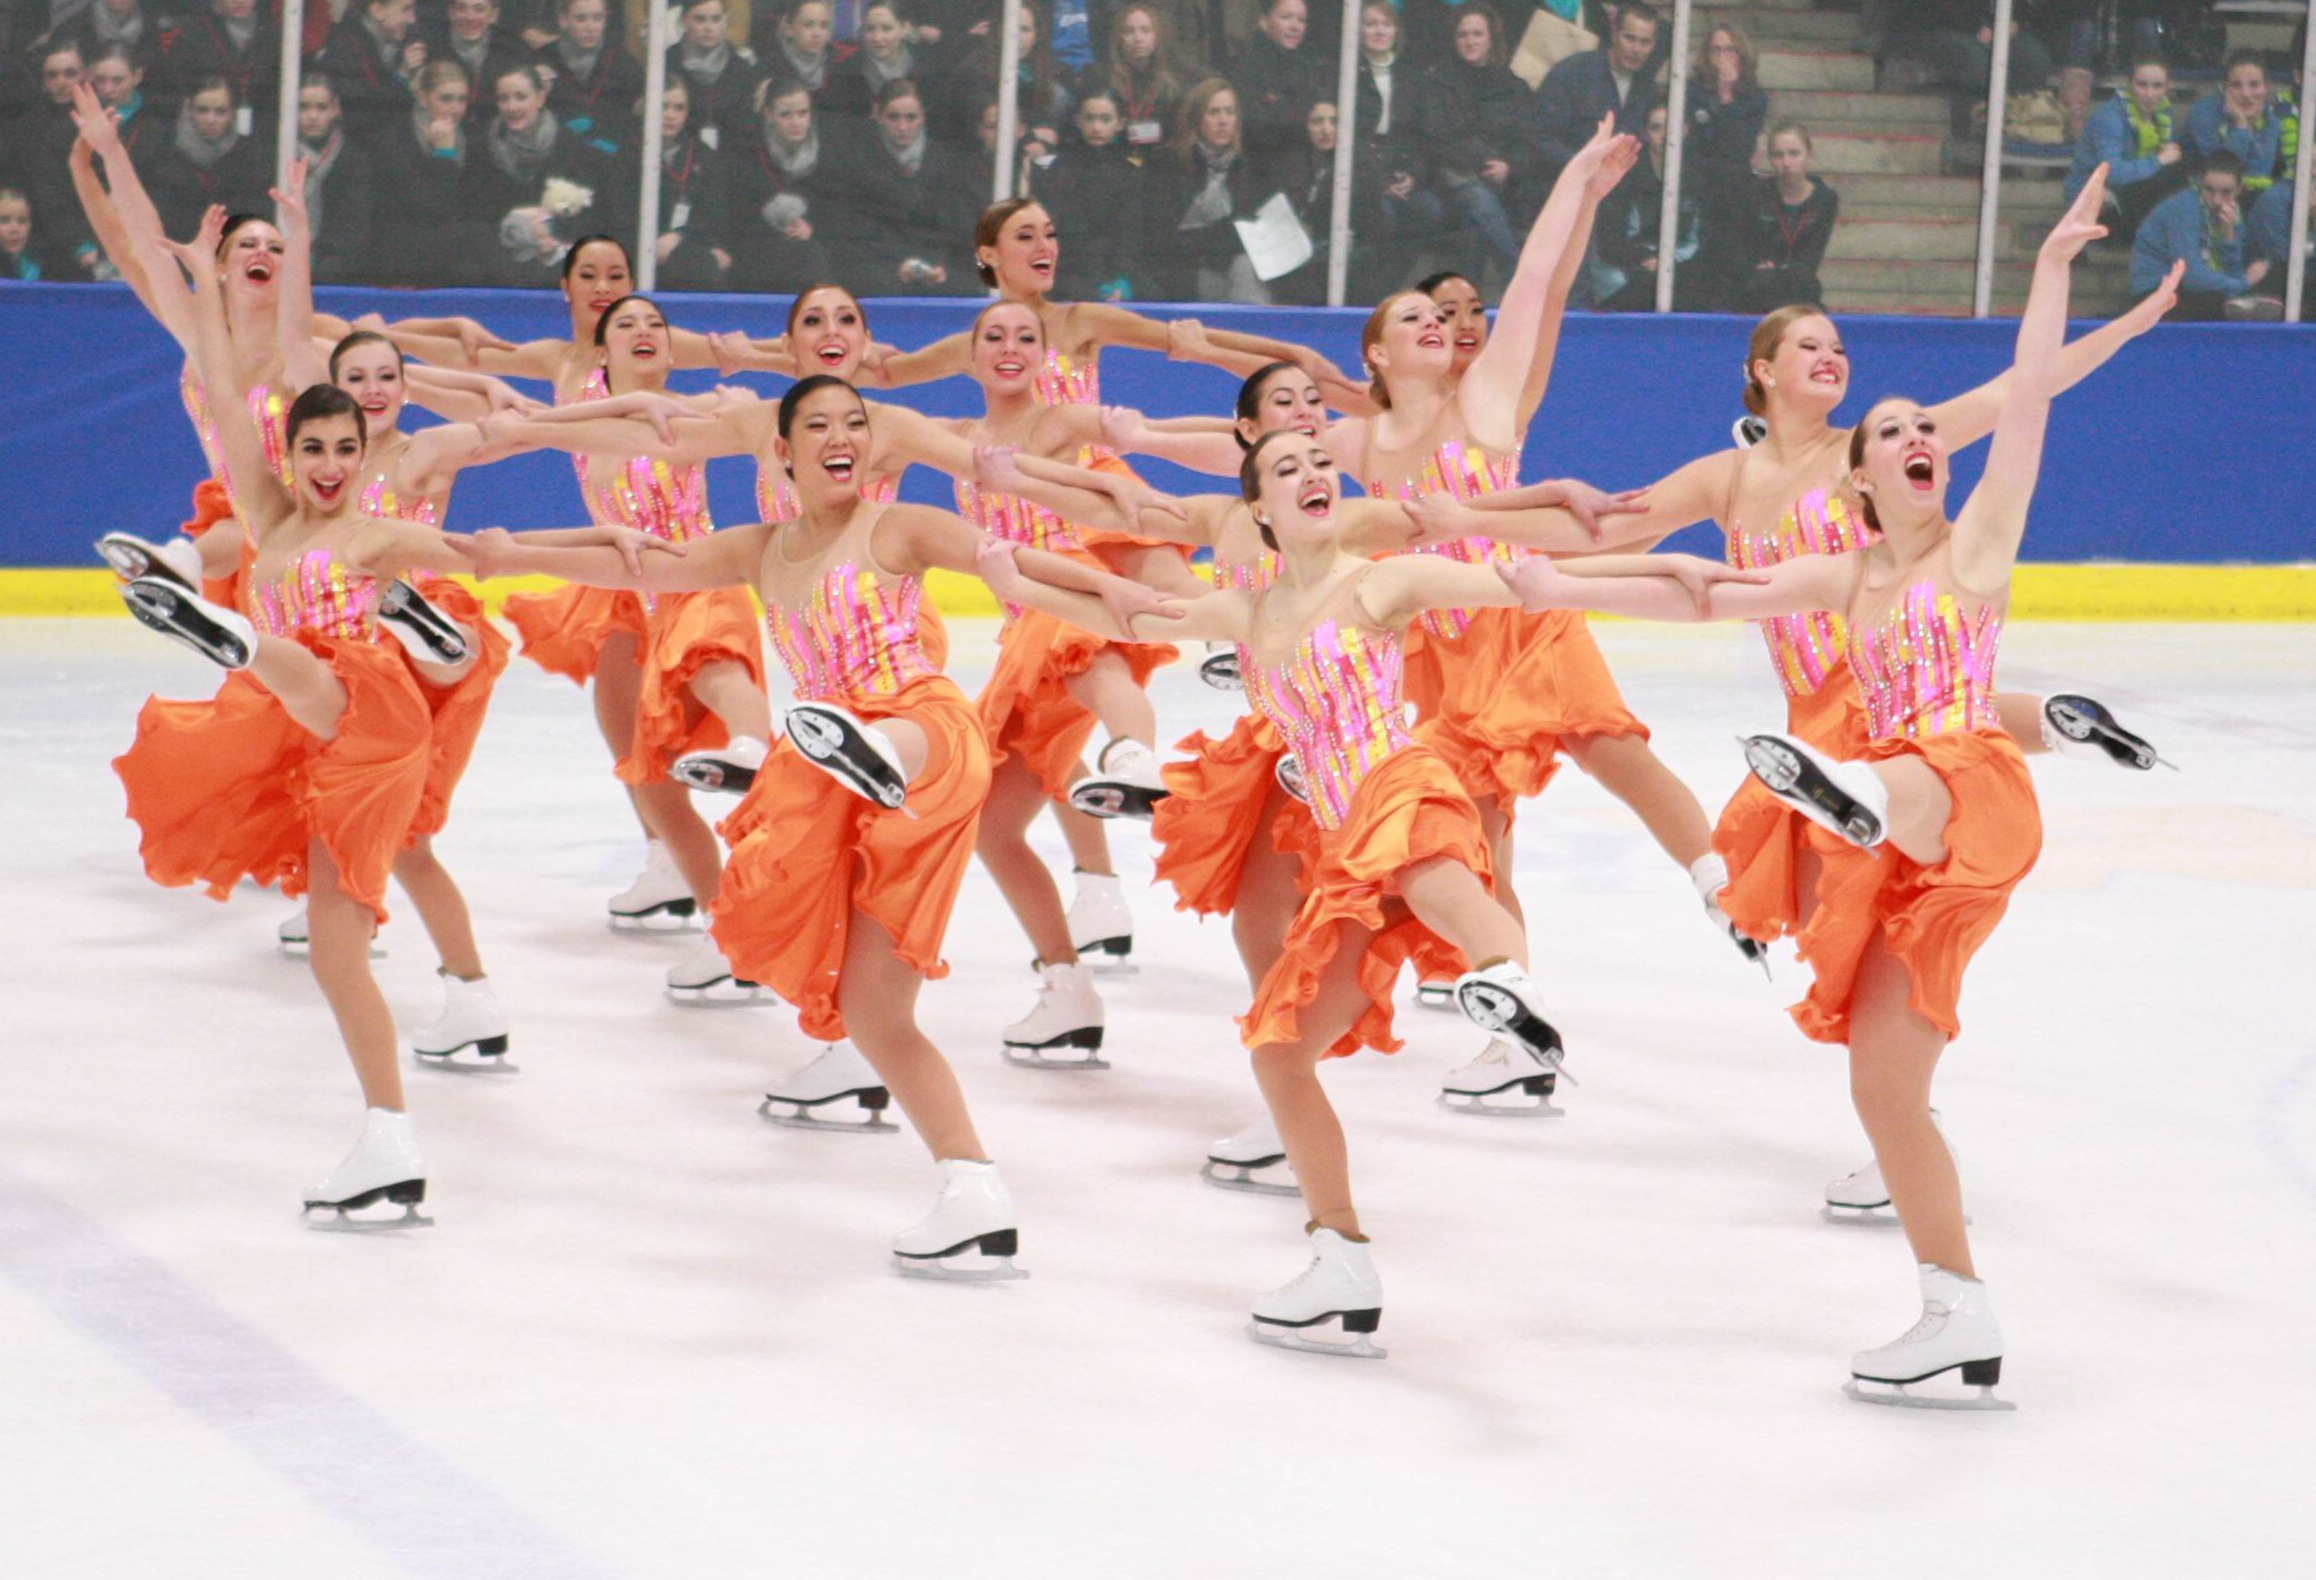 2011 US Junior synchronized skating champions, the Skyliners